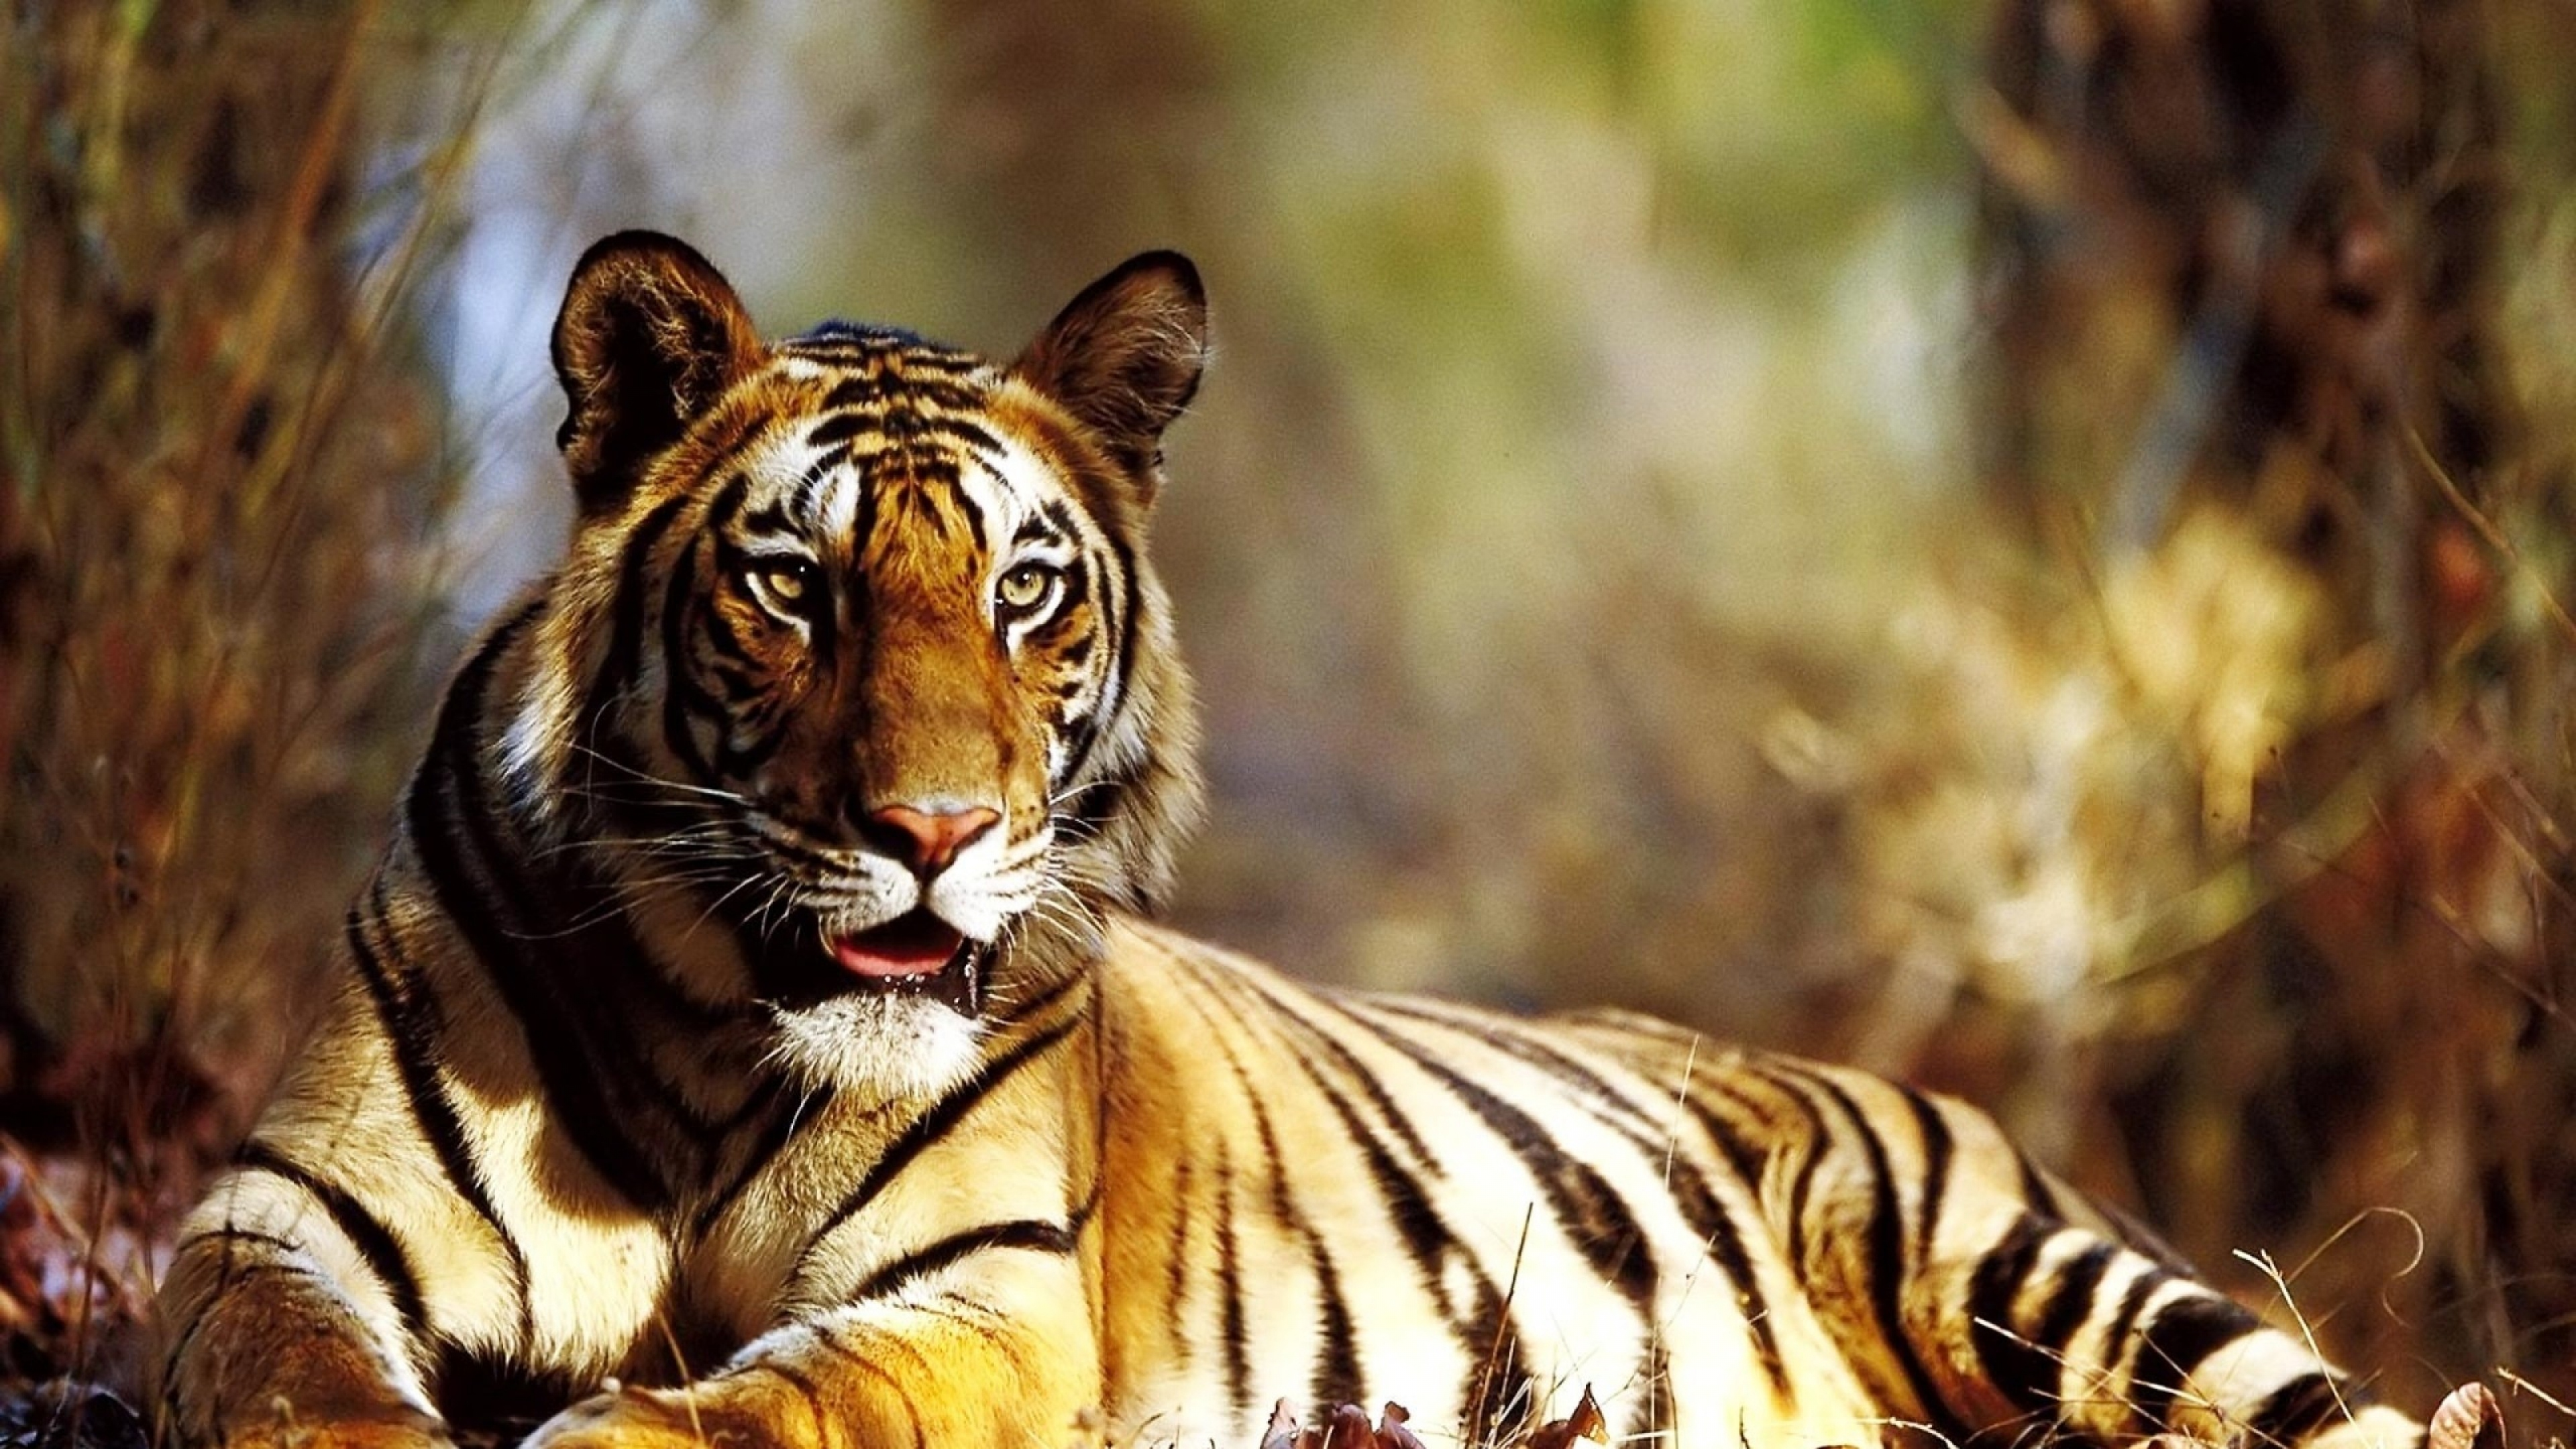 Tiger Autumn HD Animals 4k Wallpapers Images Backgrounds Photos